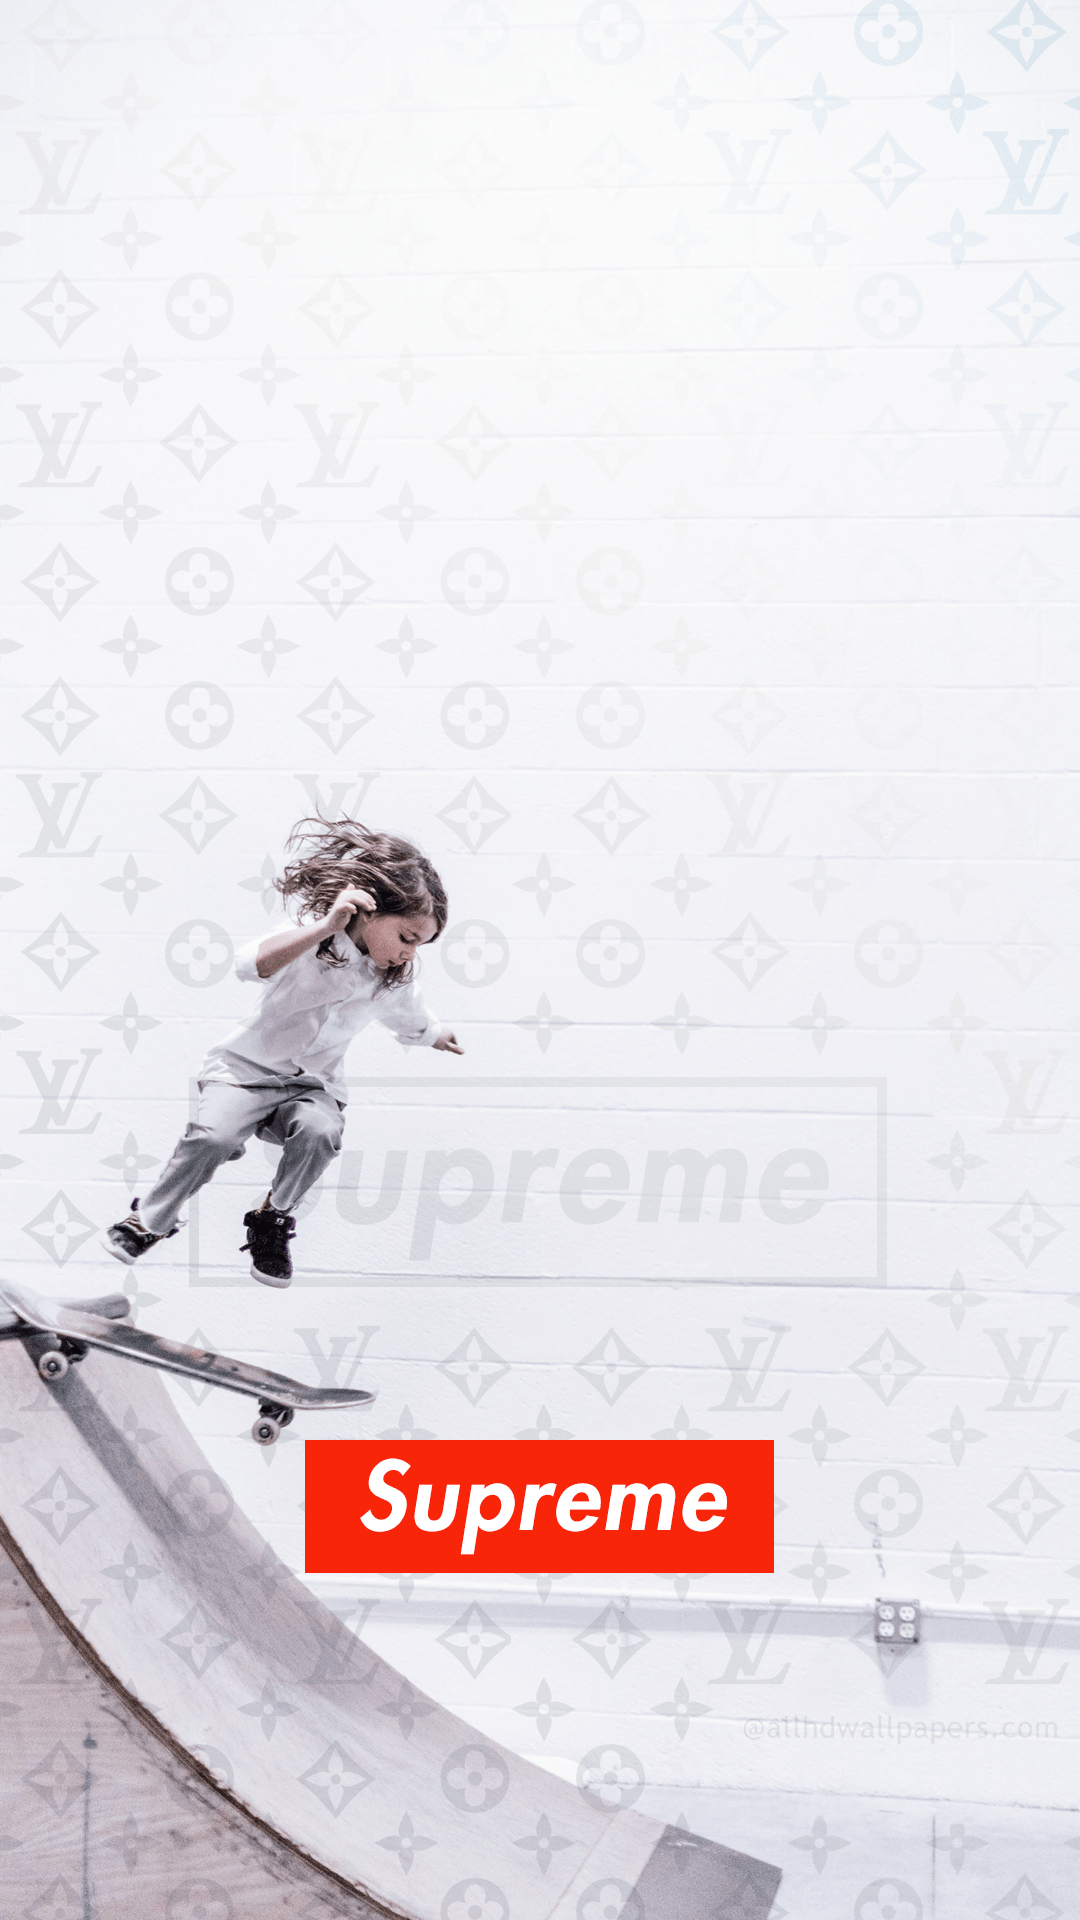 70+ Supreme Wallpapers in 4K AllHDWallpapers 壁紙